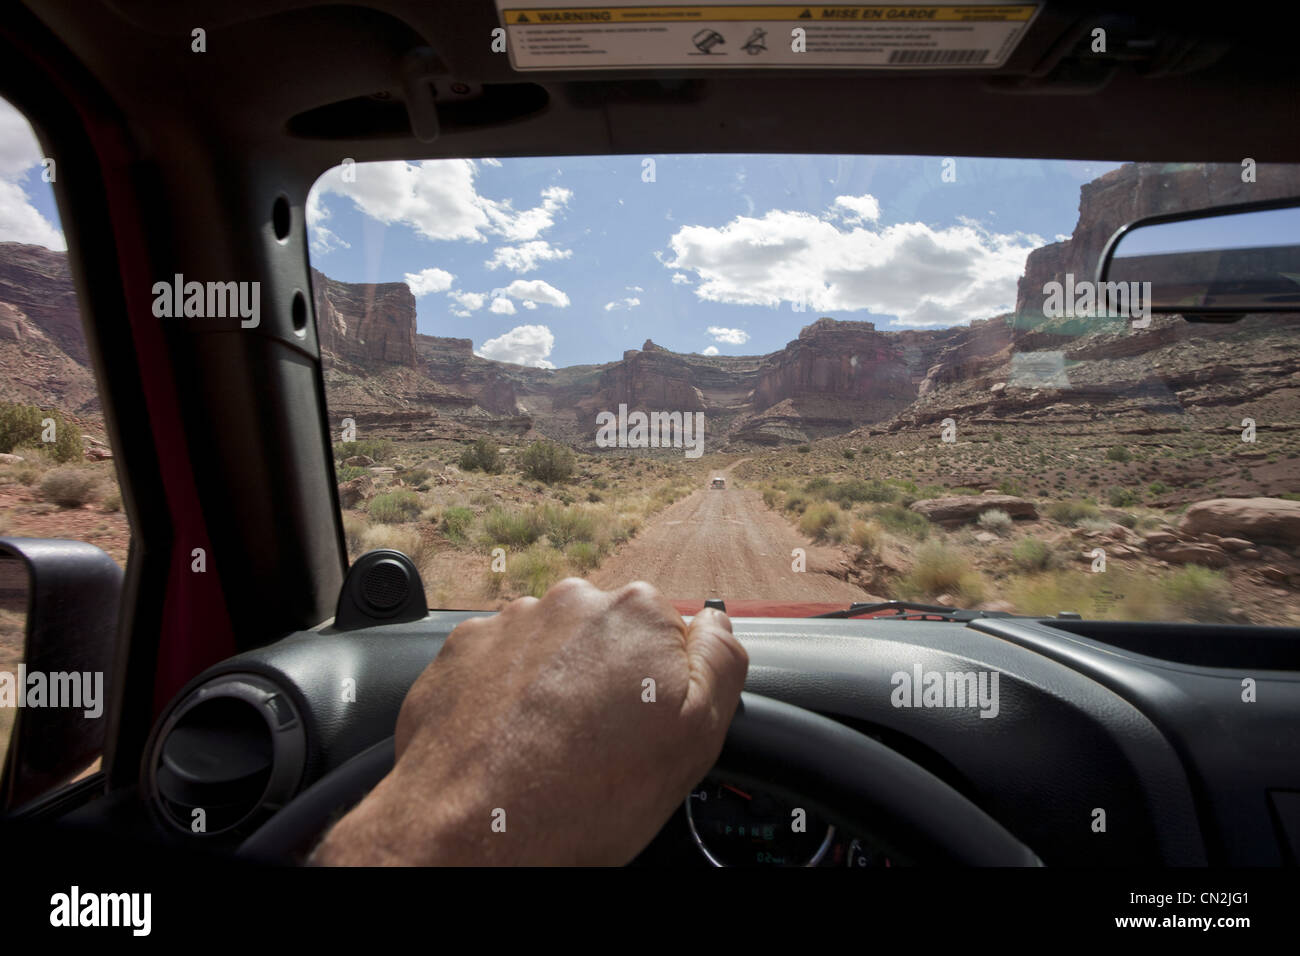 View of Remote Road Across Red Rocks Through Jeep Window, Moab, Utah, USA - Stock Image